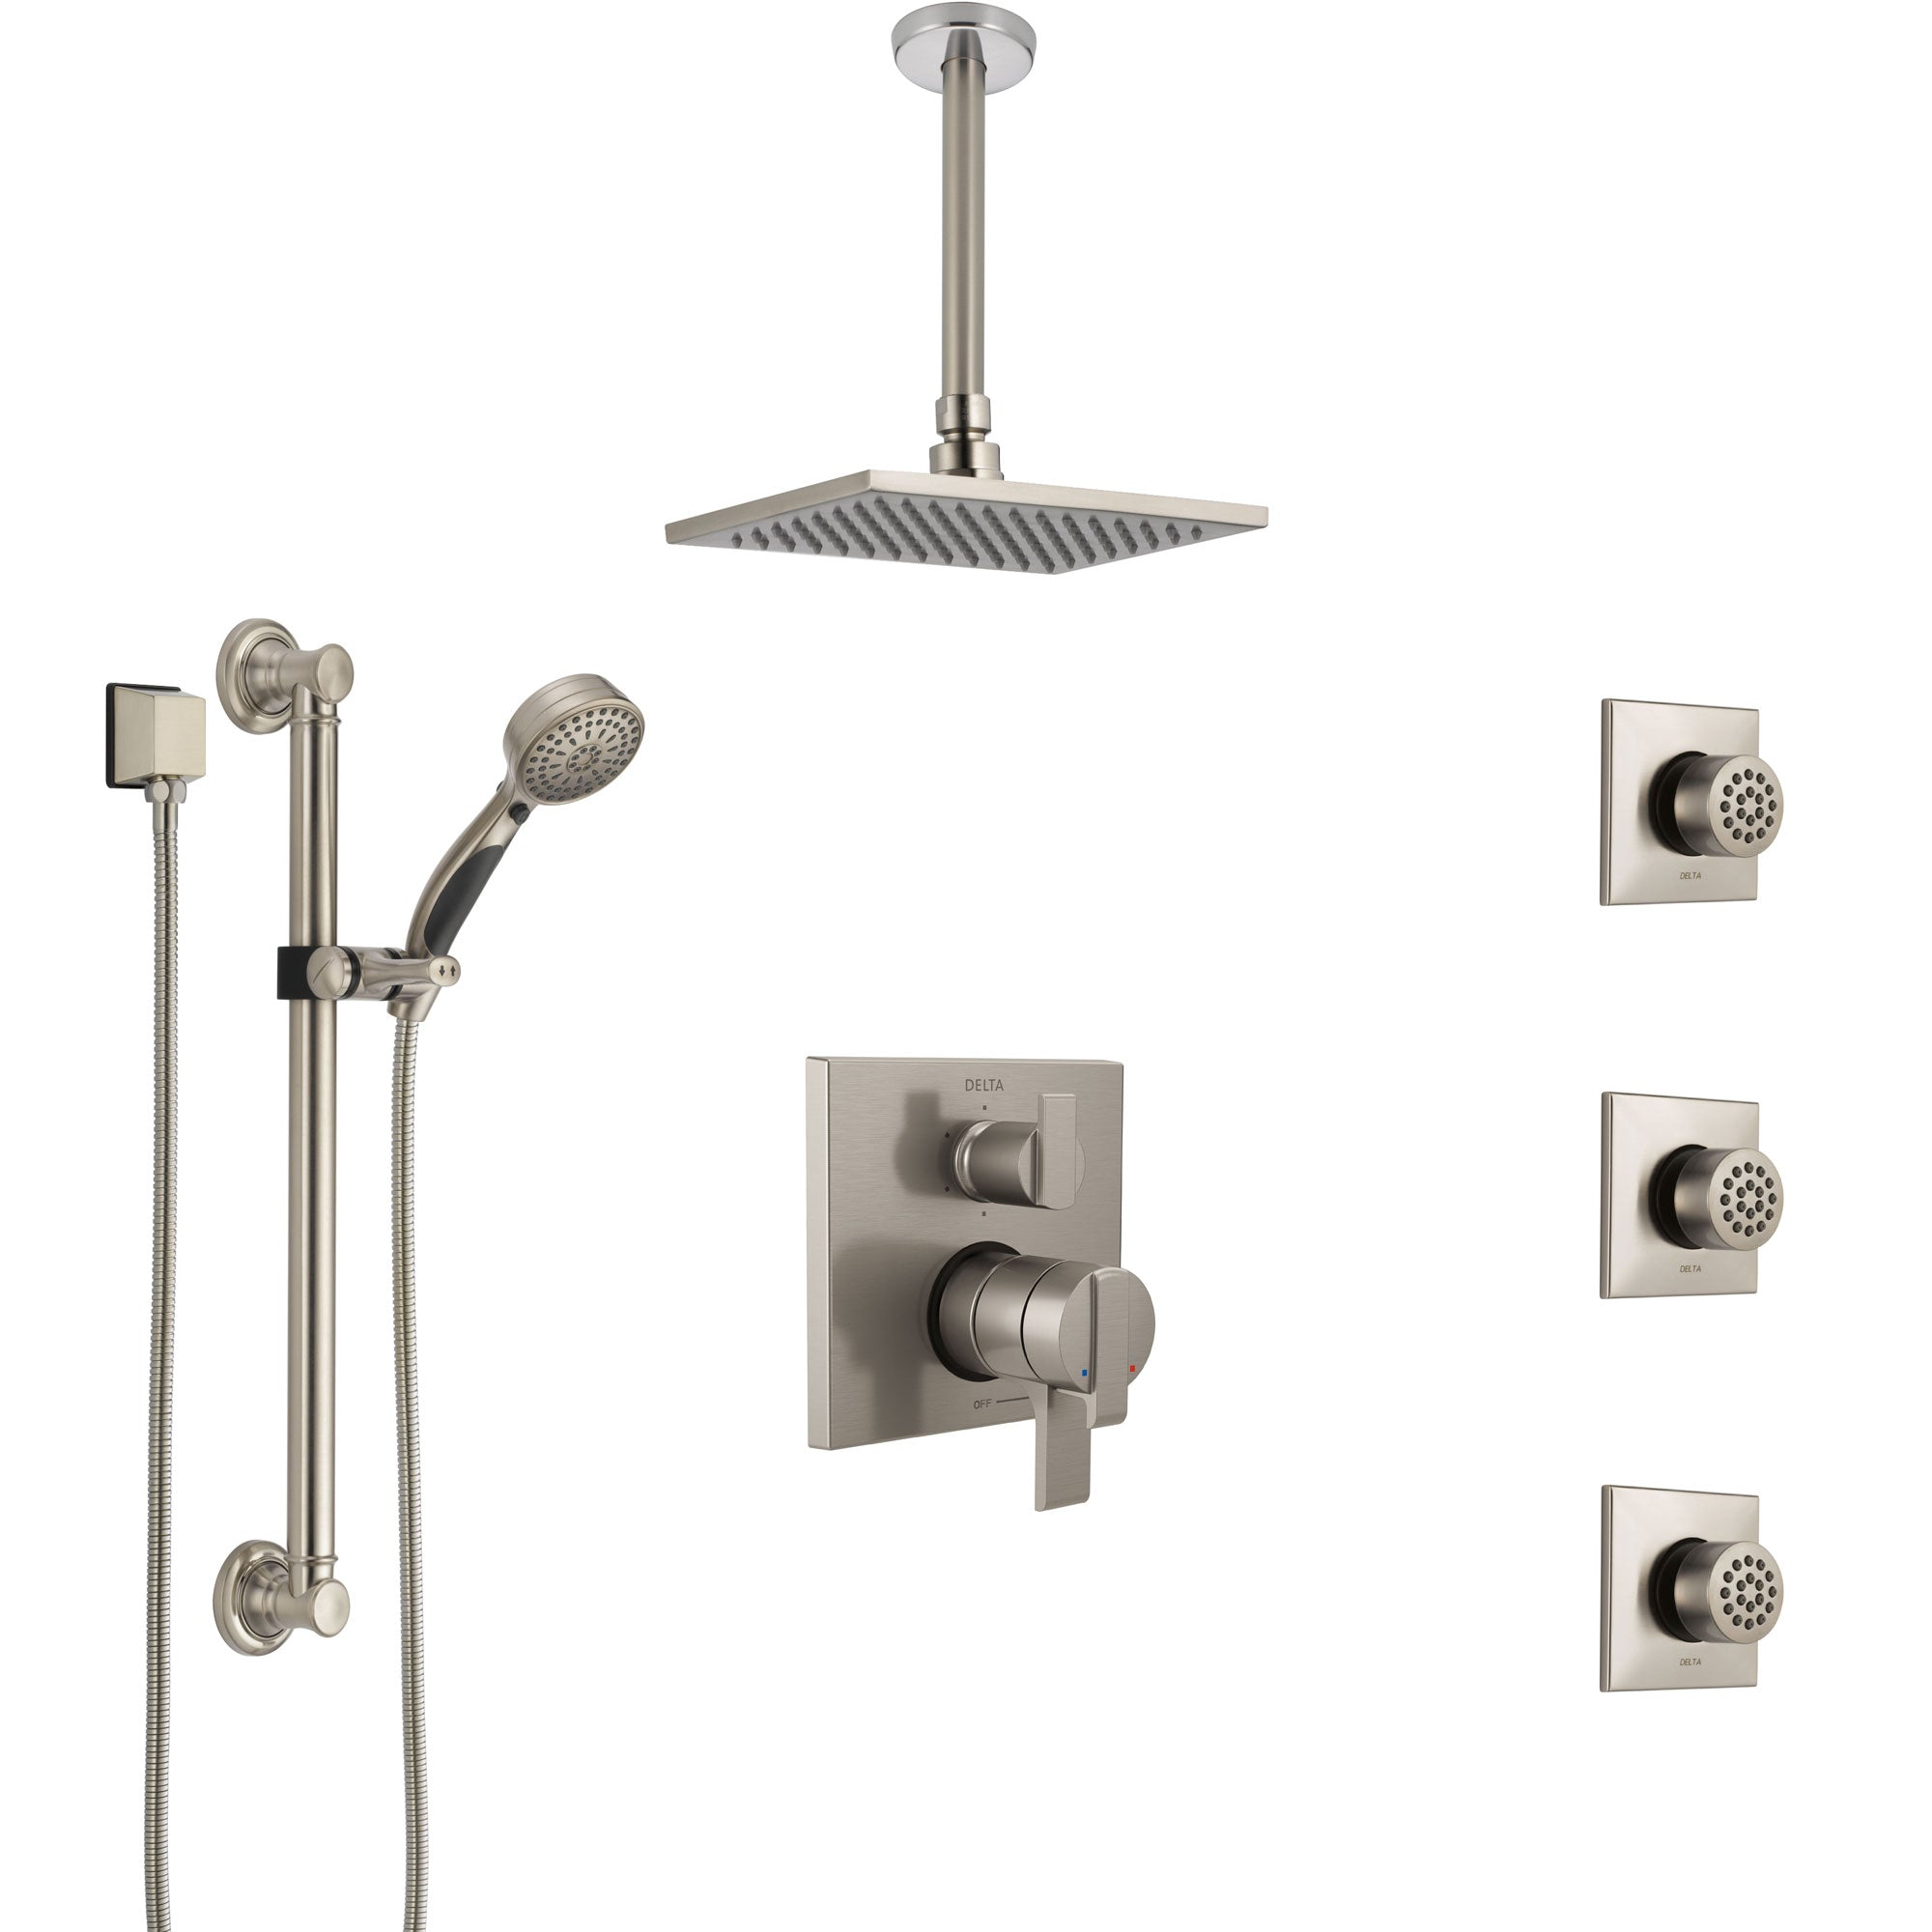 Delta Ara Dual Control Handle Stainless Steel Finish Shower System, Ceiling Showerhead, 3 Body Jets, Grab Bar Hand Spray SS27967SS1